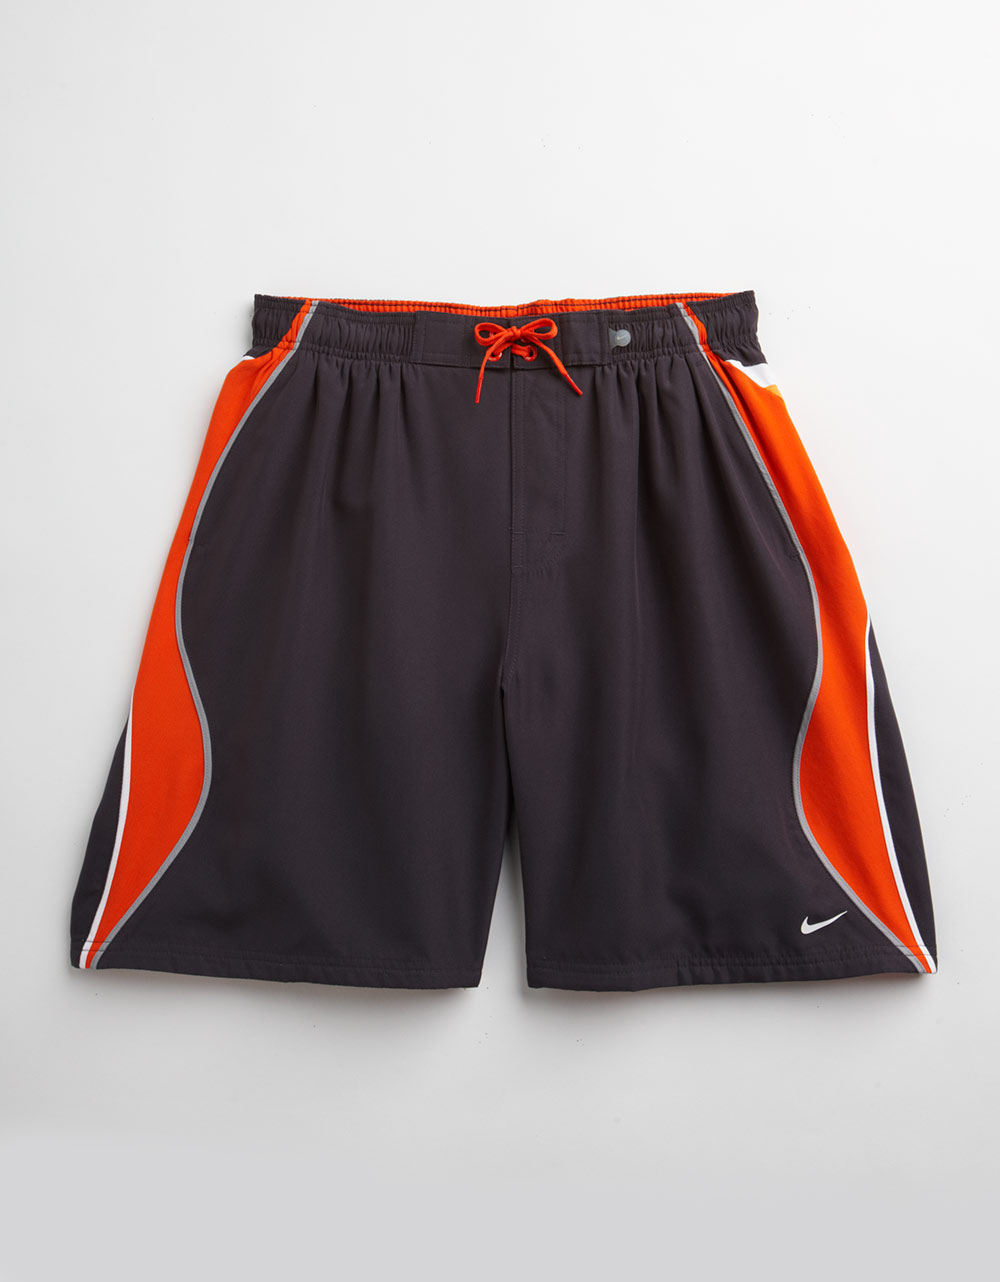 Lyst - Nike Volleyball Shorts in Orange for Men